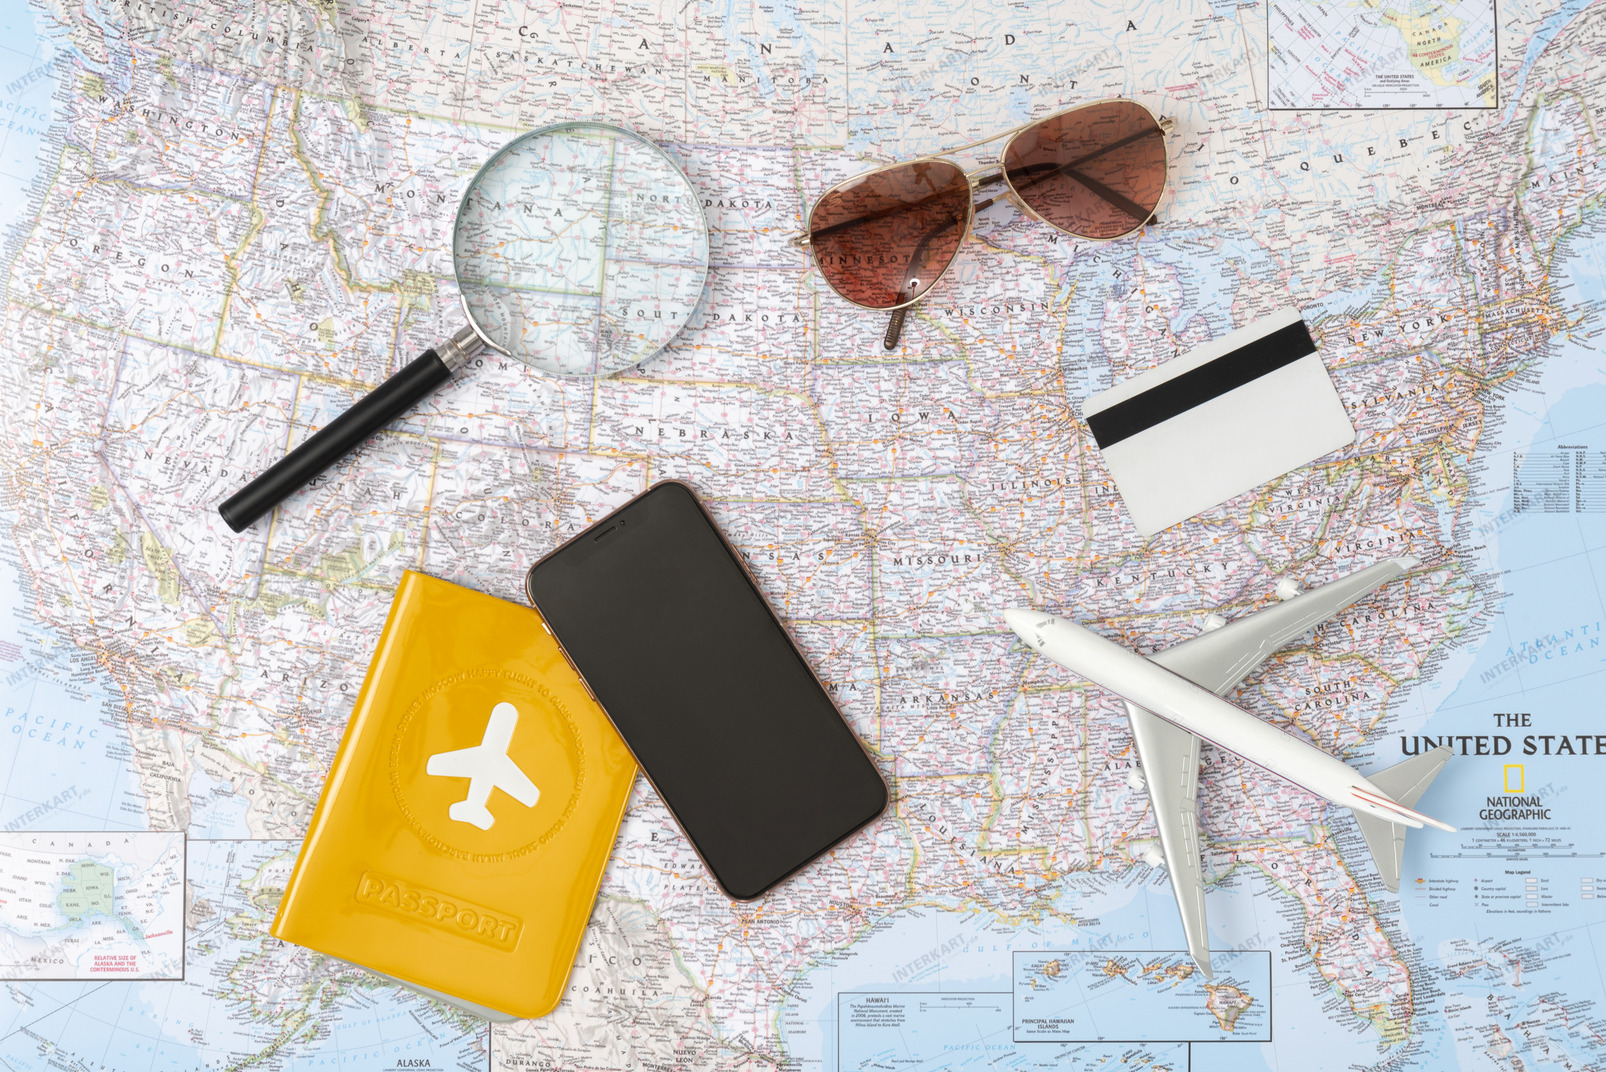 Grab your phone, shades, credit card and a passport, let's get lost somewhere in the usa